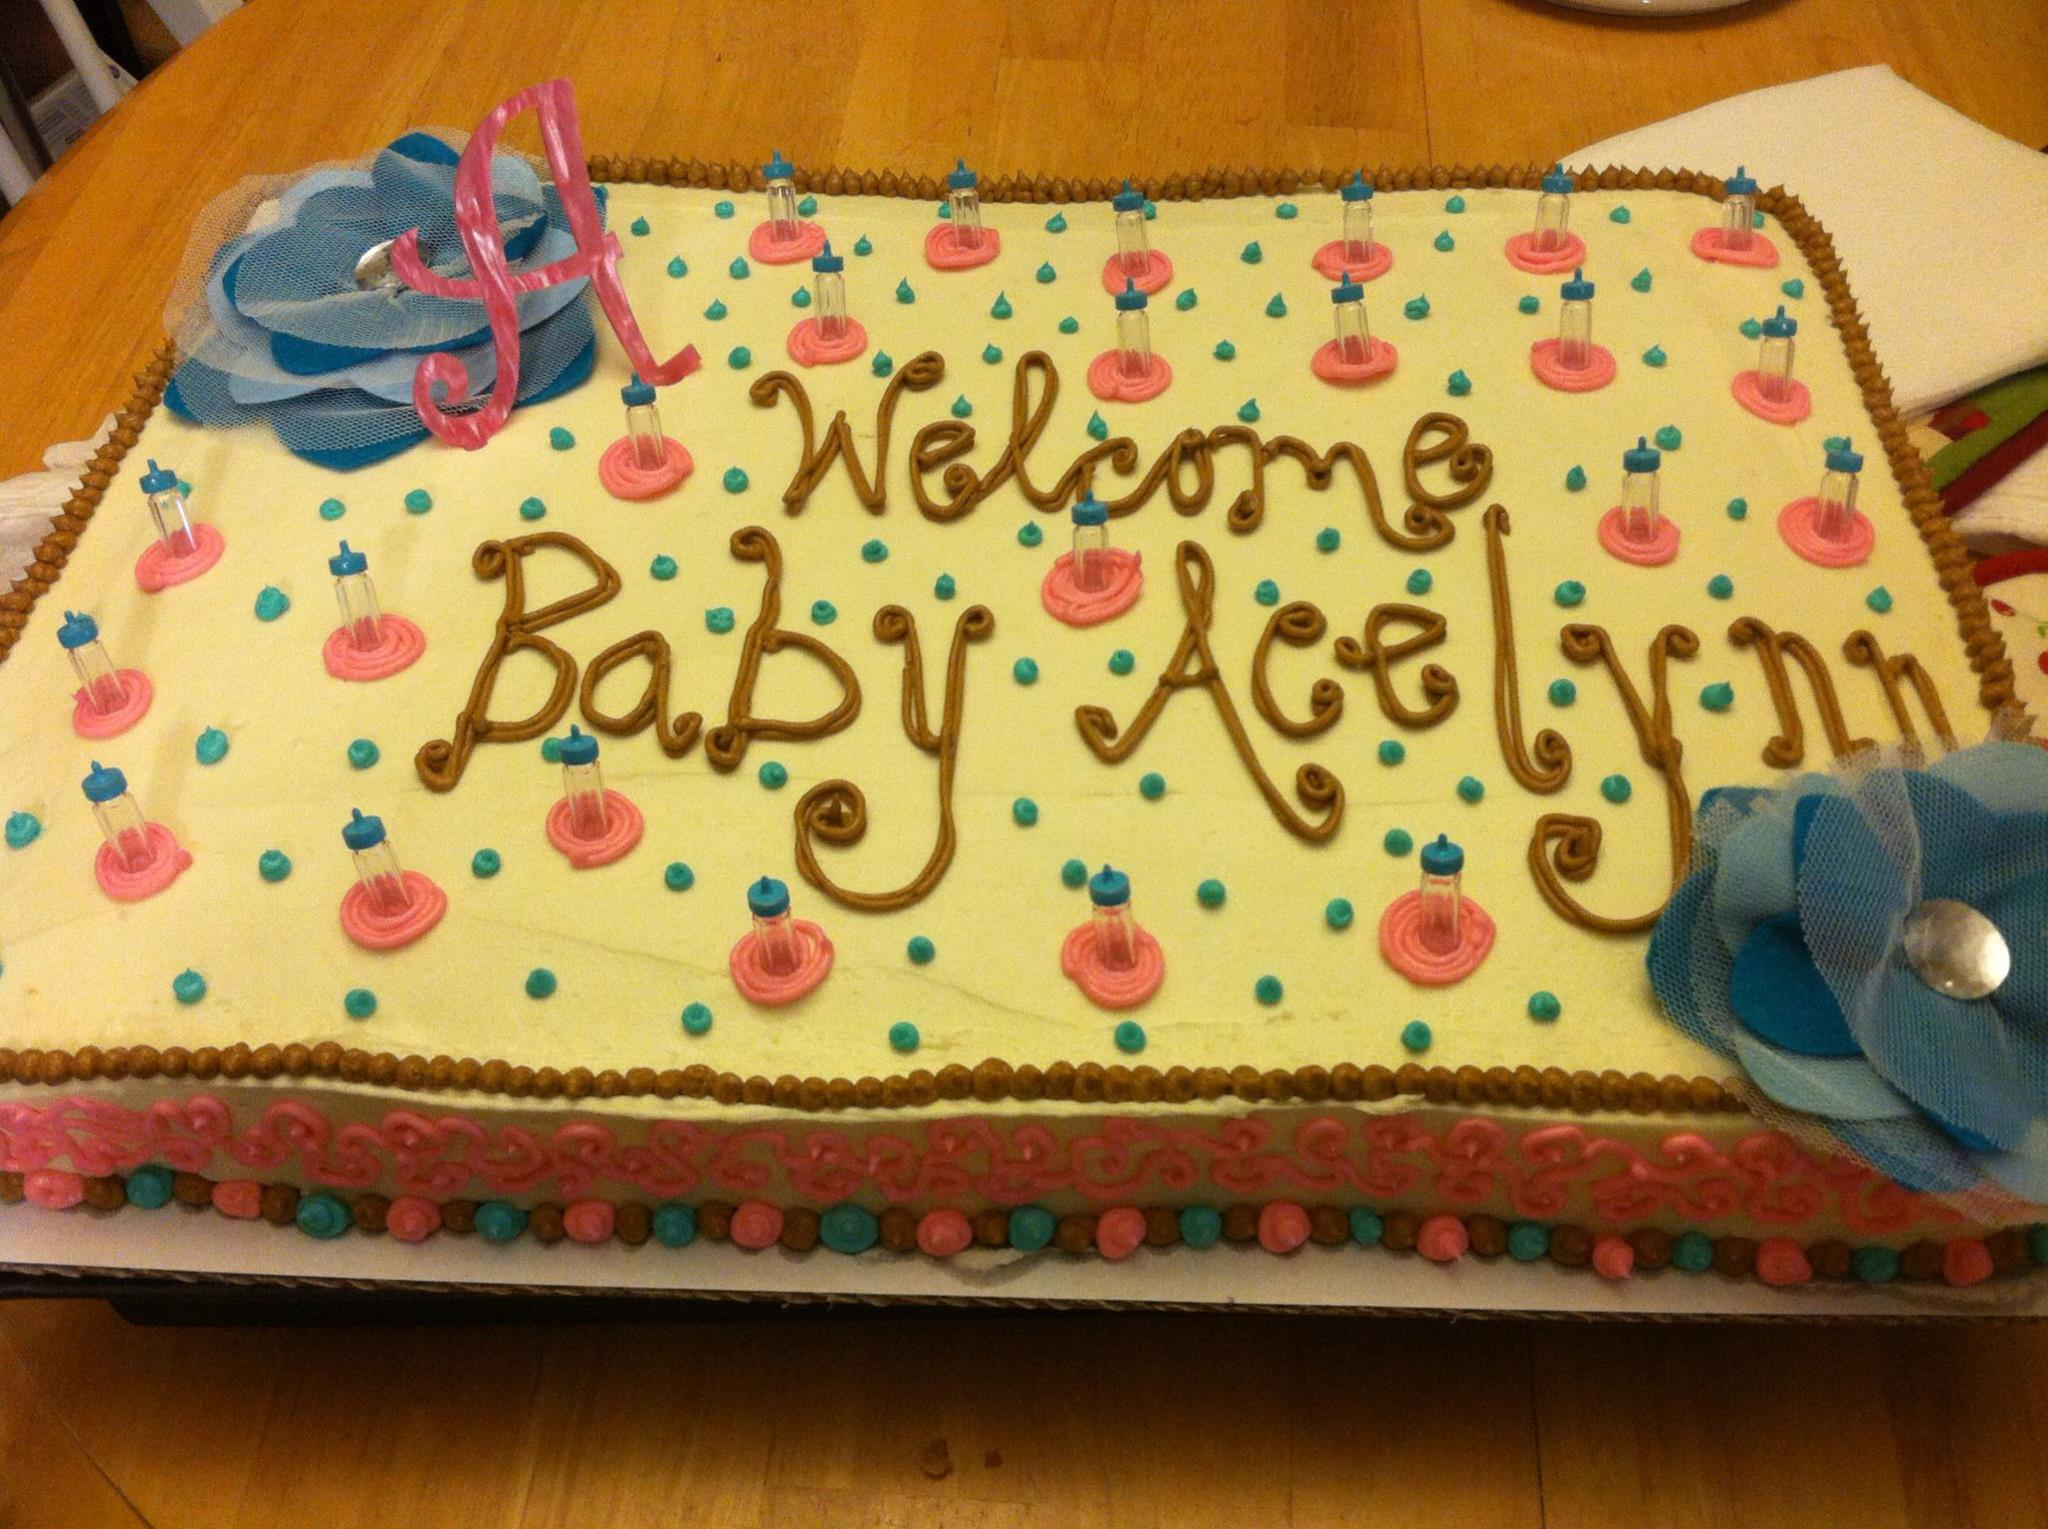 Baby Shower Sheet Cake with Plastic Baby Bottle Decor and Fabric Flowers